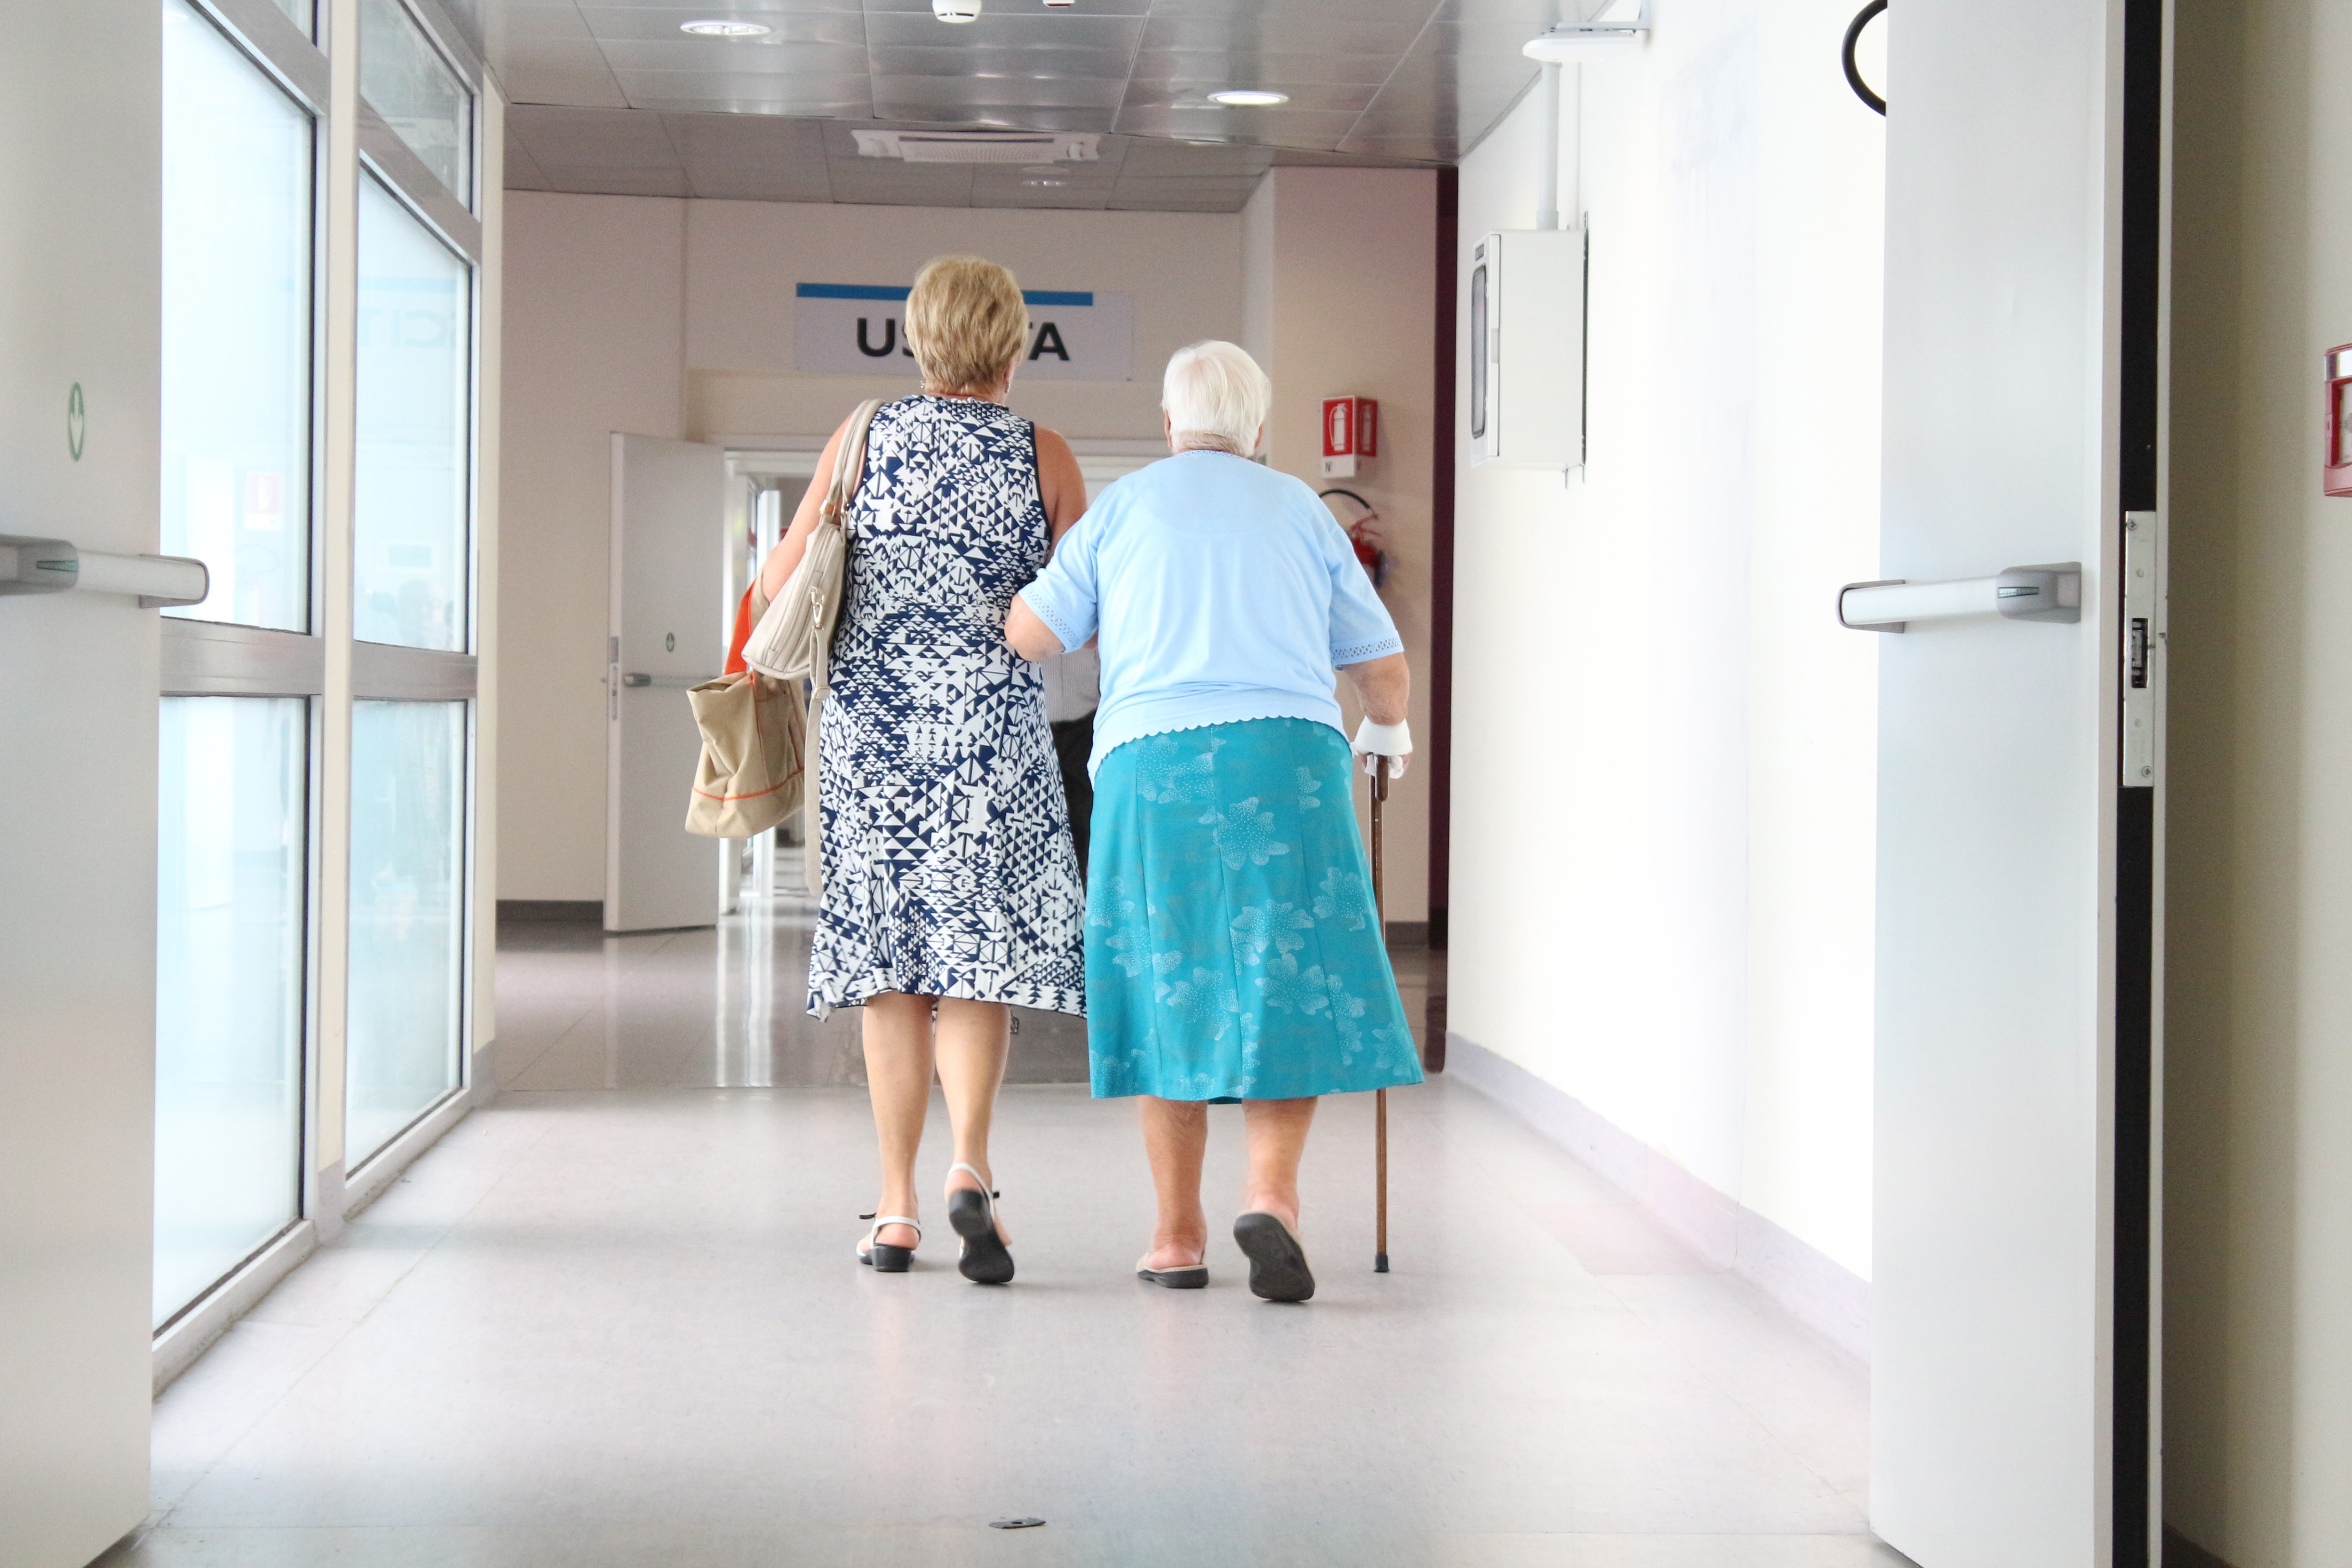 Study 2.2: Barriers and enablers to delivering optimal dementia care: Perceptions of geriatricians